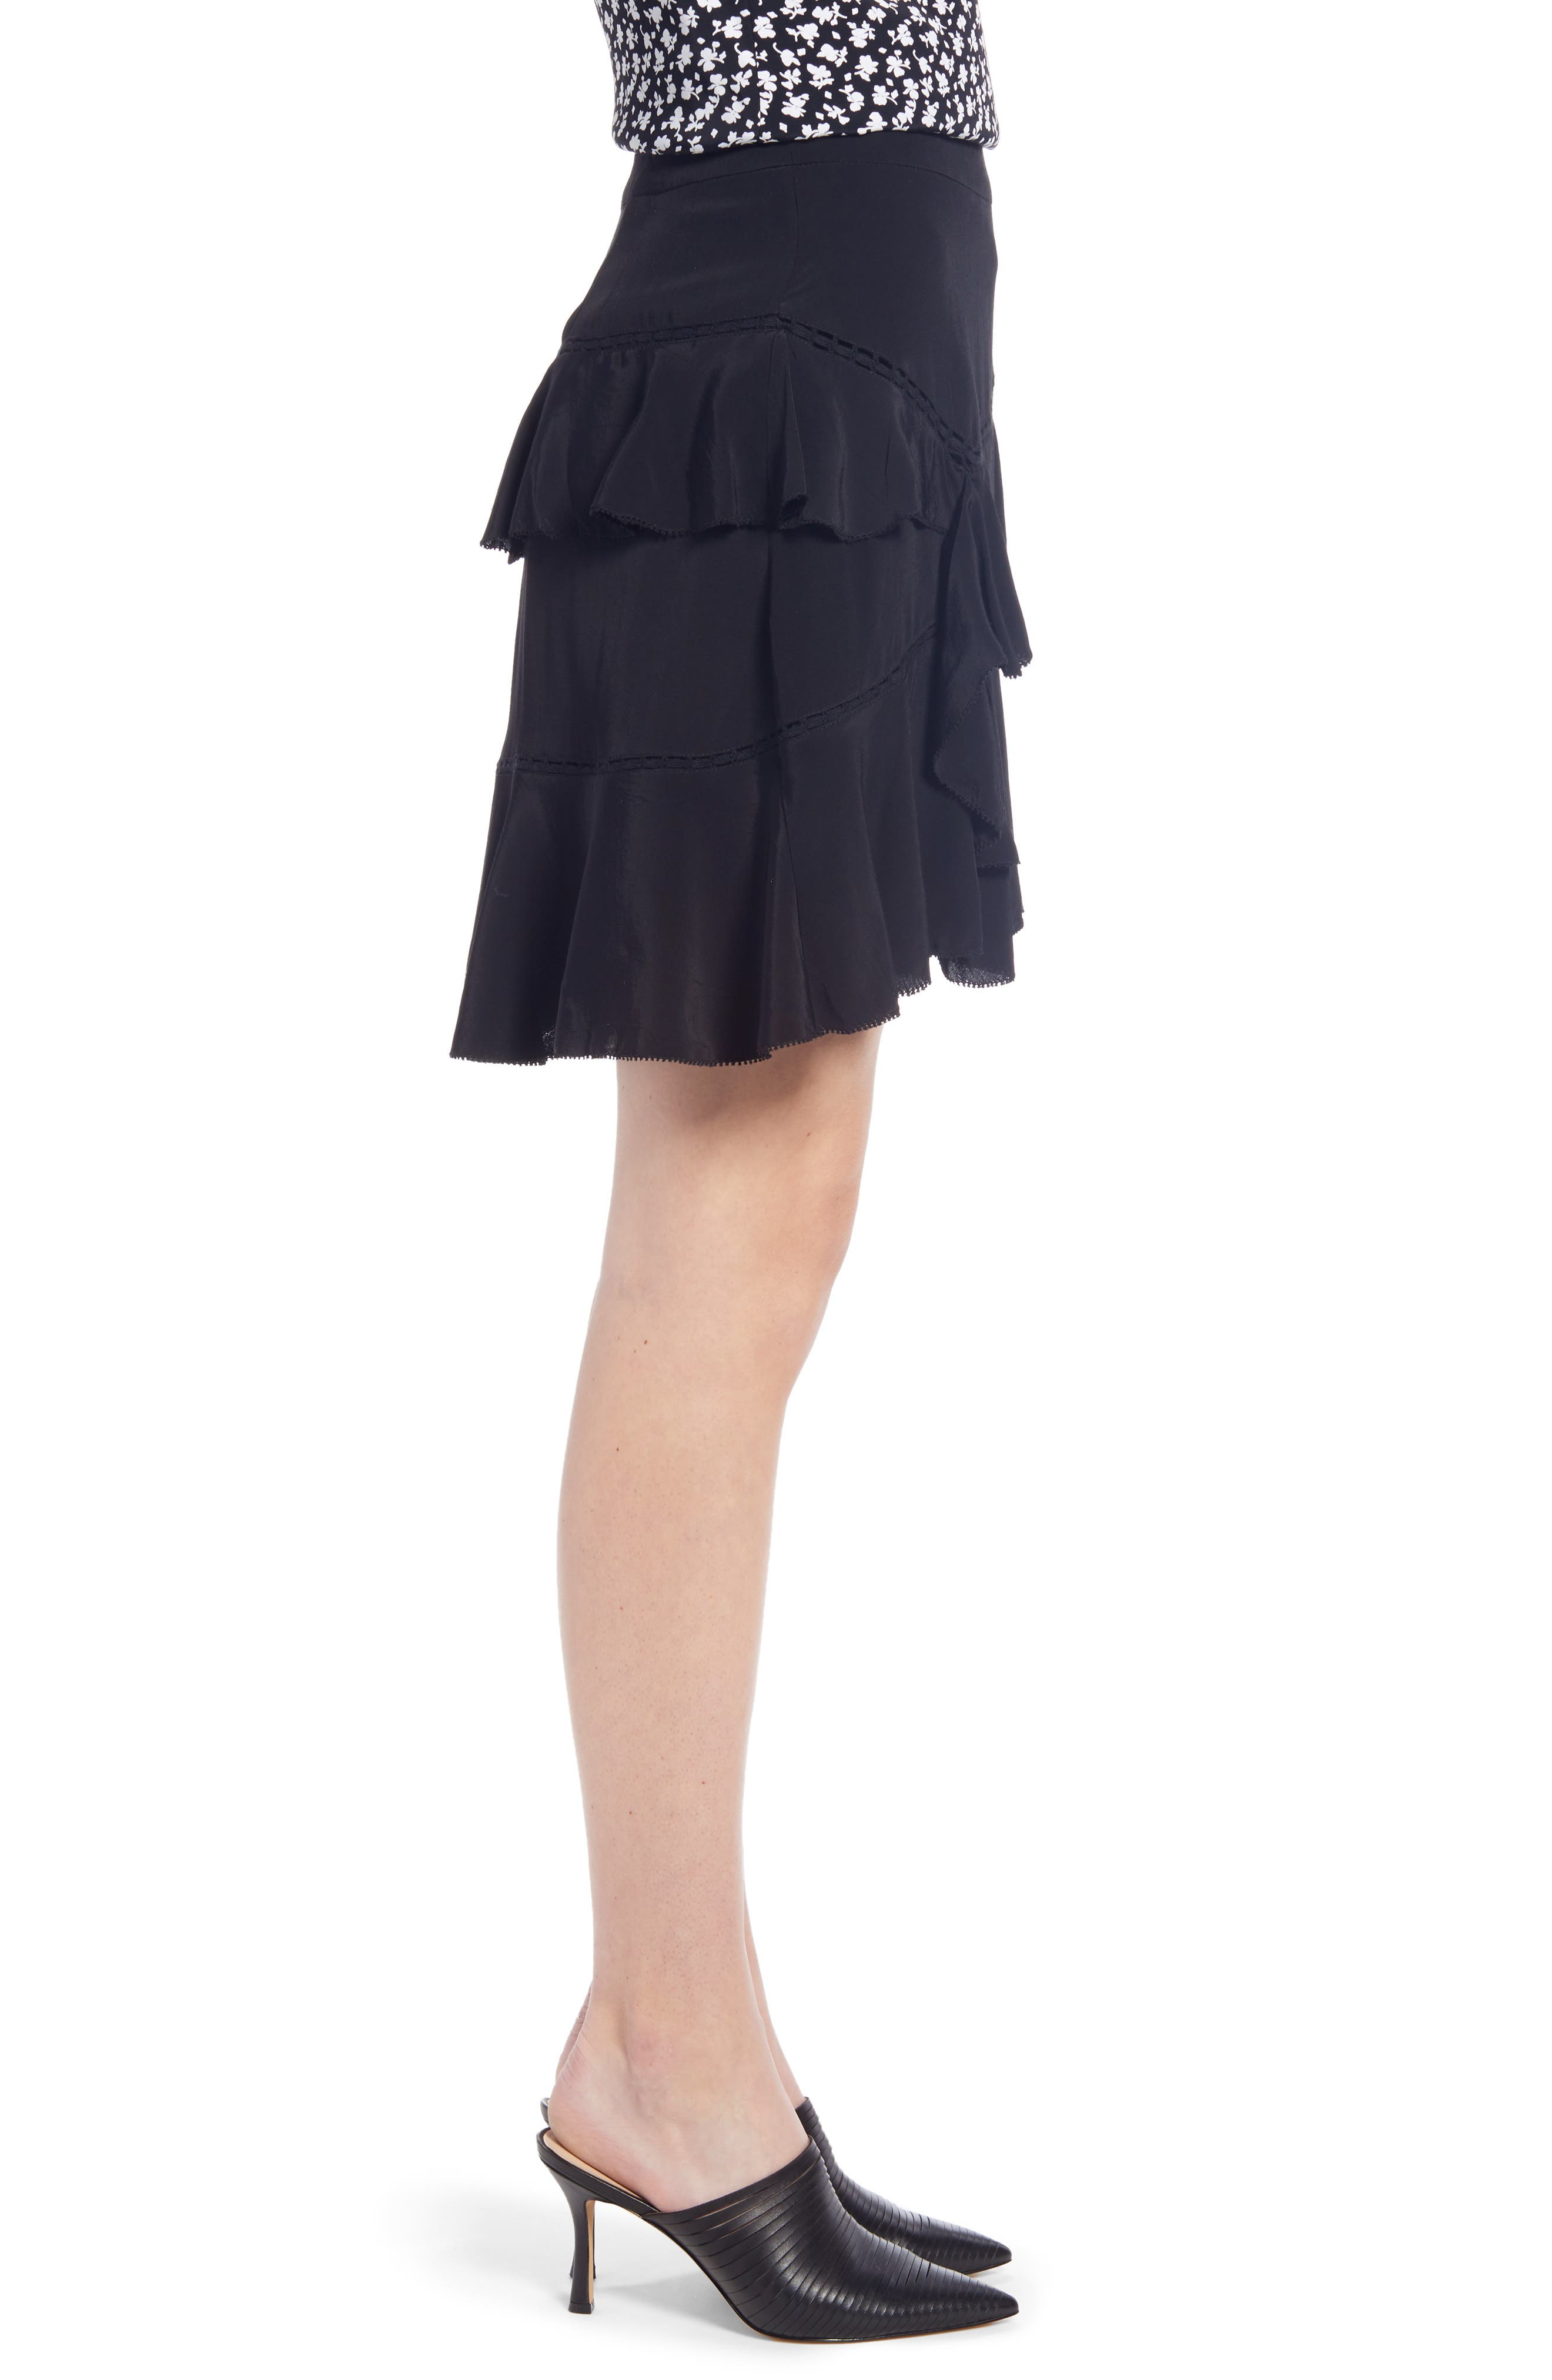 SOMETHING NAVY, Tiered Ruffle High/Low Miniskirt, Alternate thumbnail 5, color, BLACK